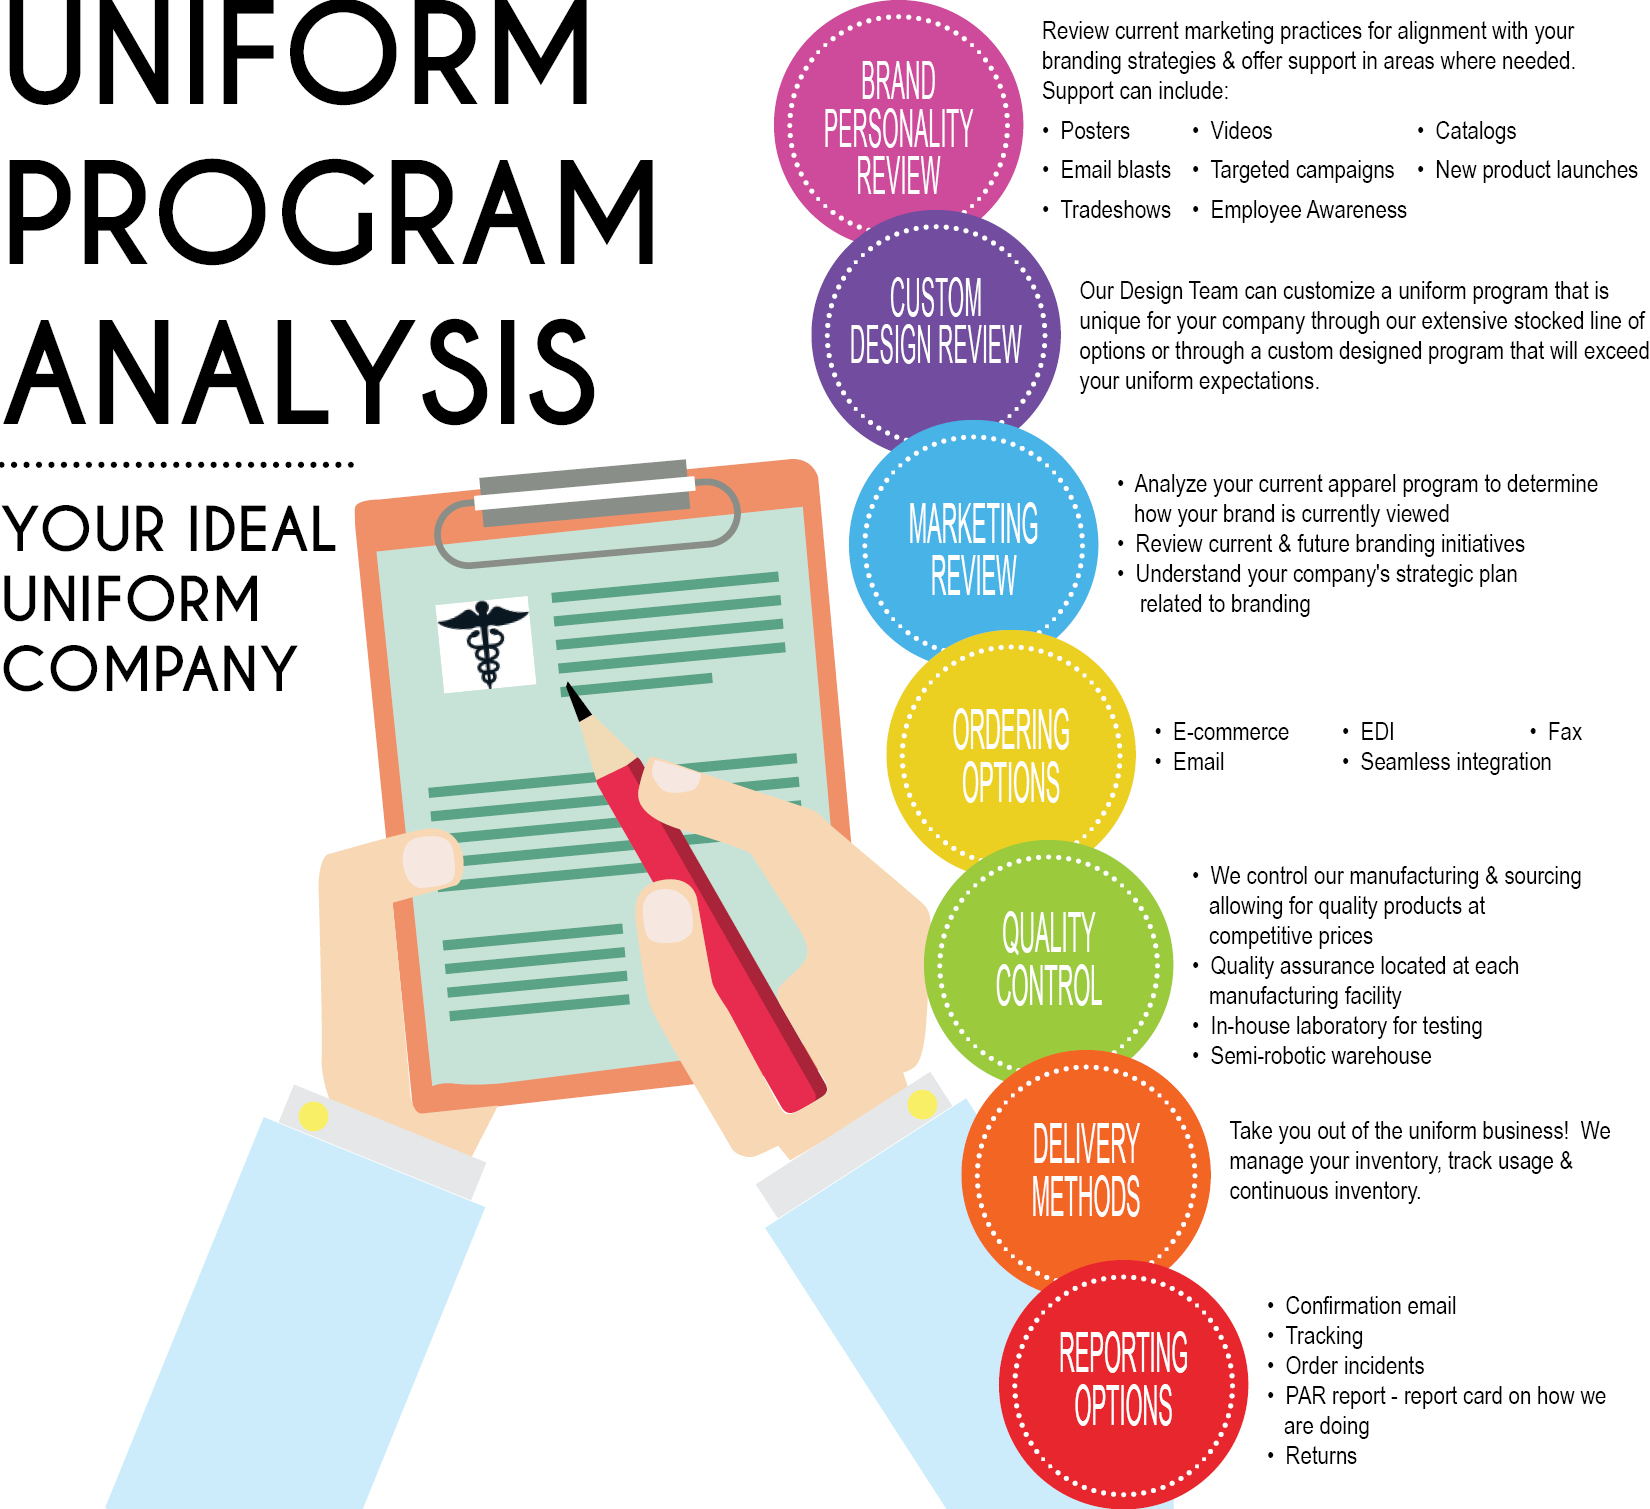 Uniform Program Analysis from Fashion Seal Healthcare